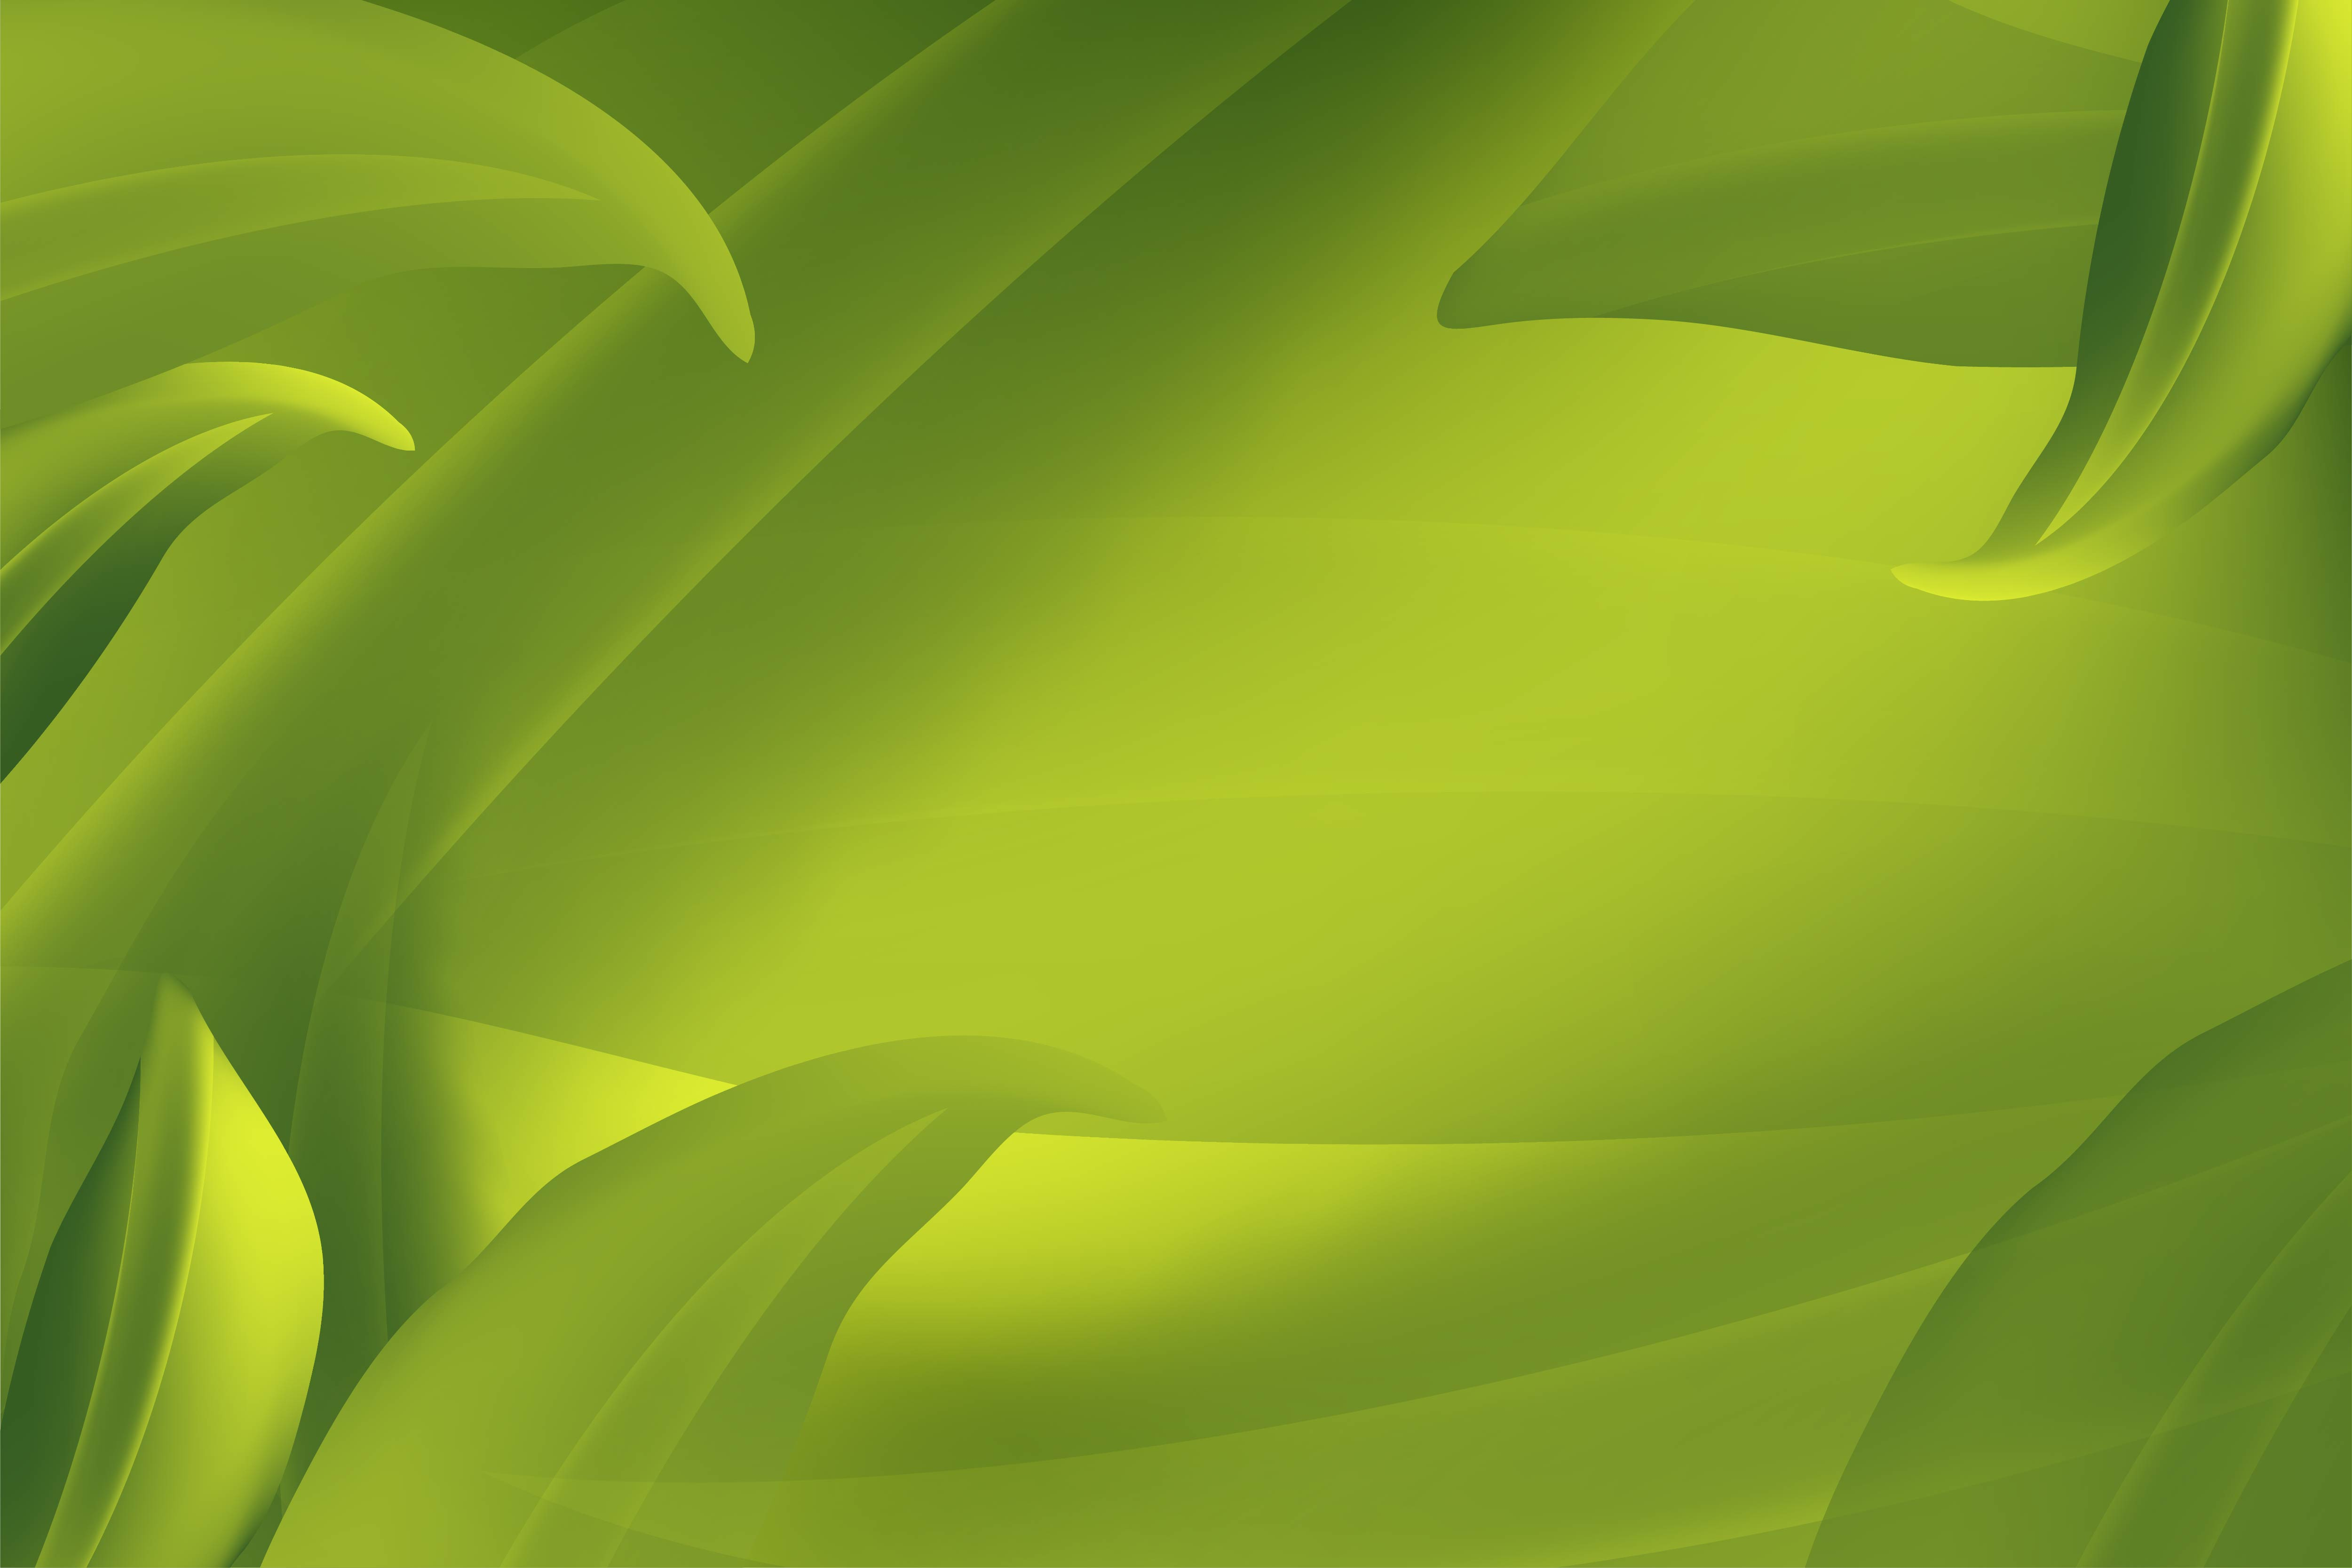 Download Free Realistic Fly Green Leaves Pattern Background On A Green Organic SVG Cut Files